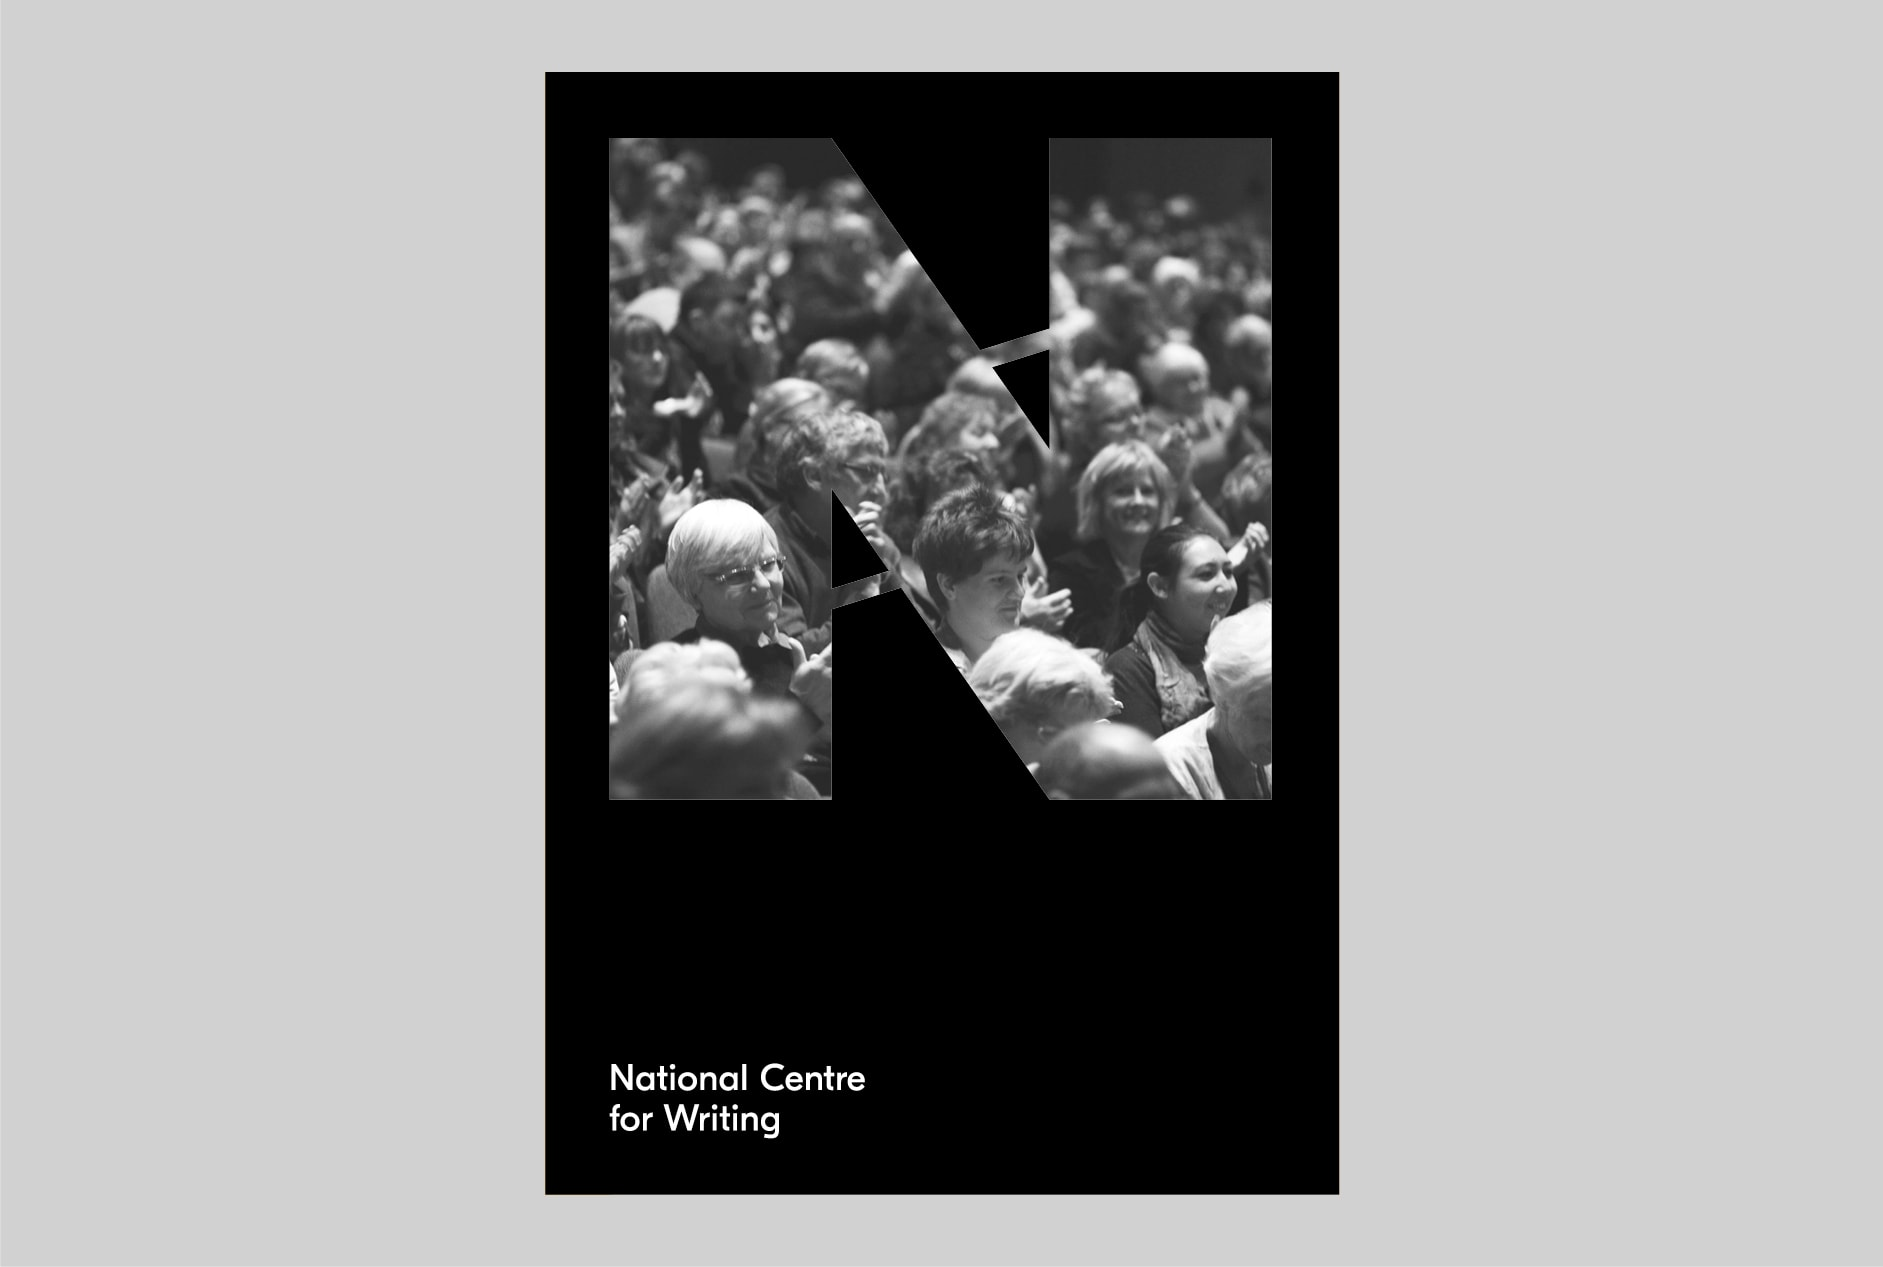 National Centre for Writing brand communications